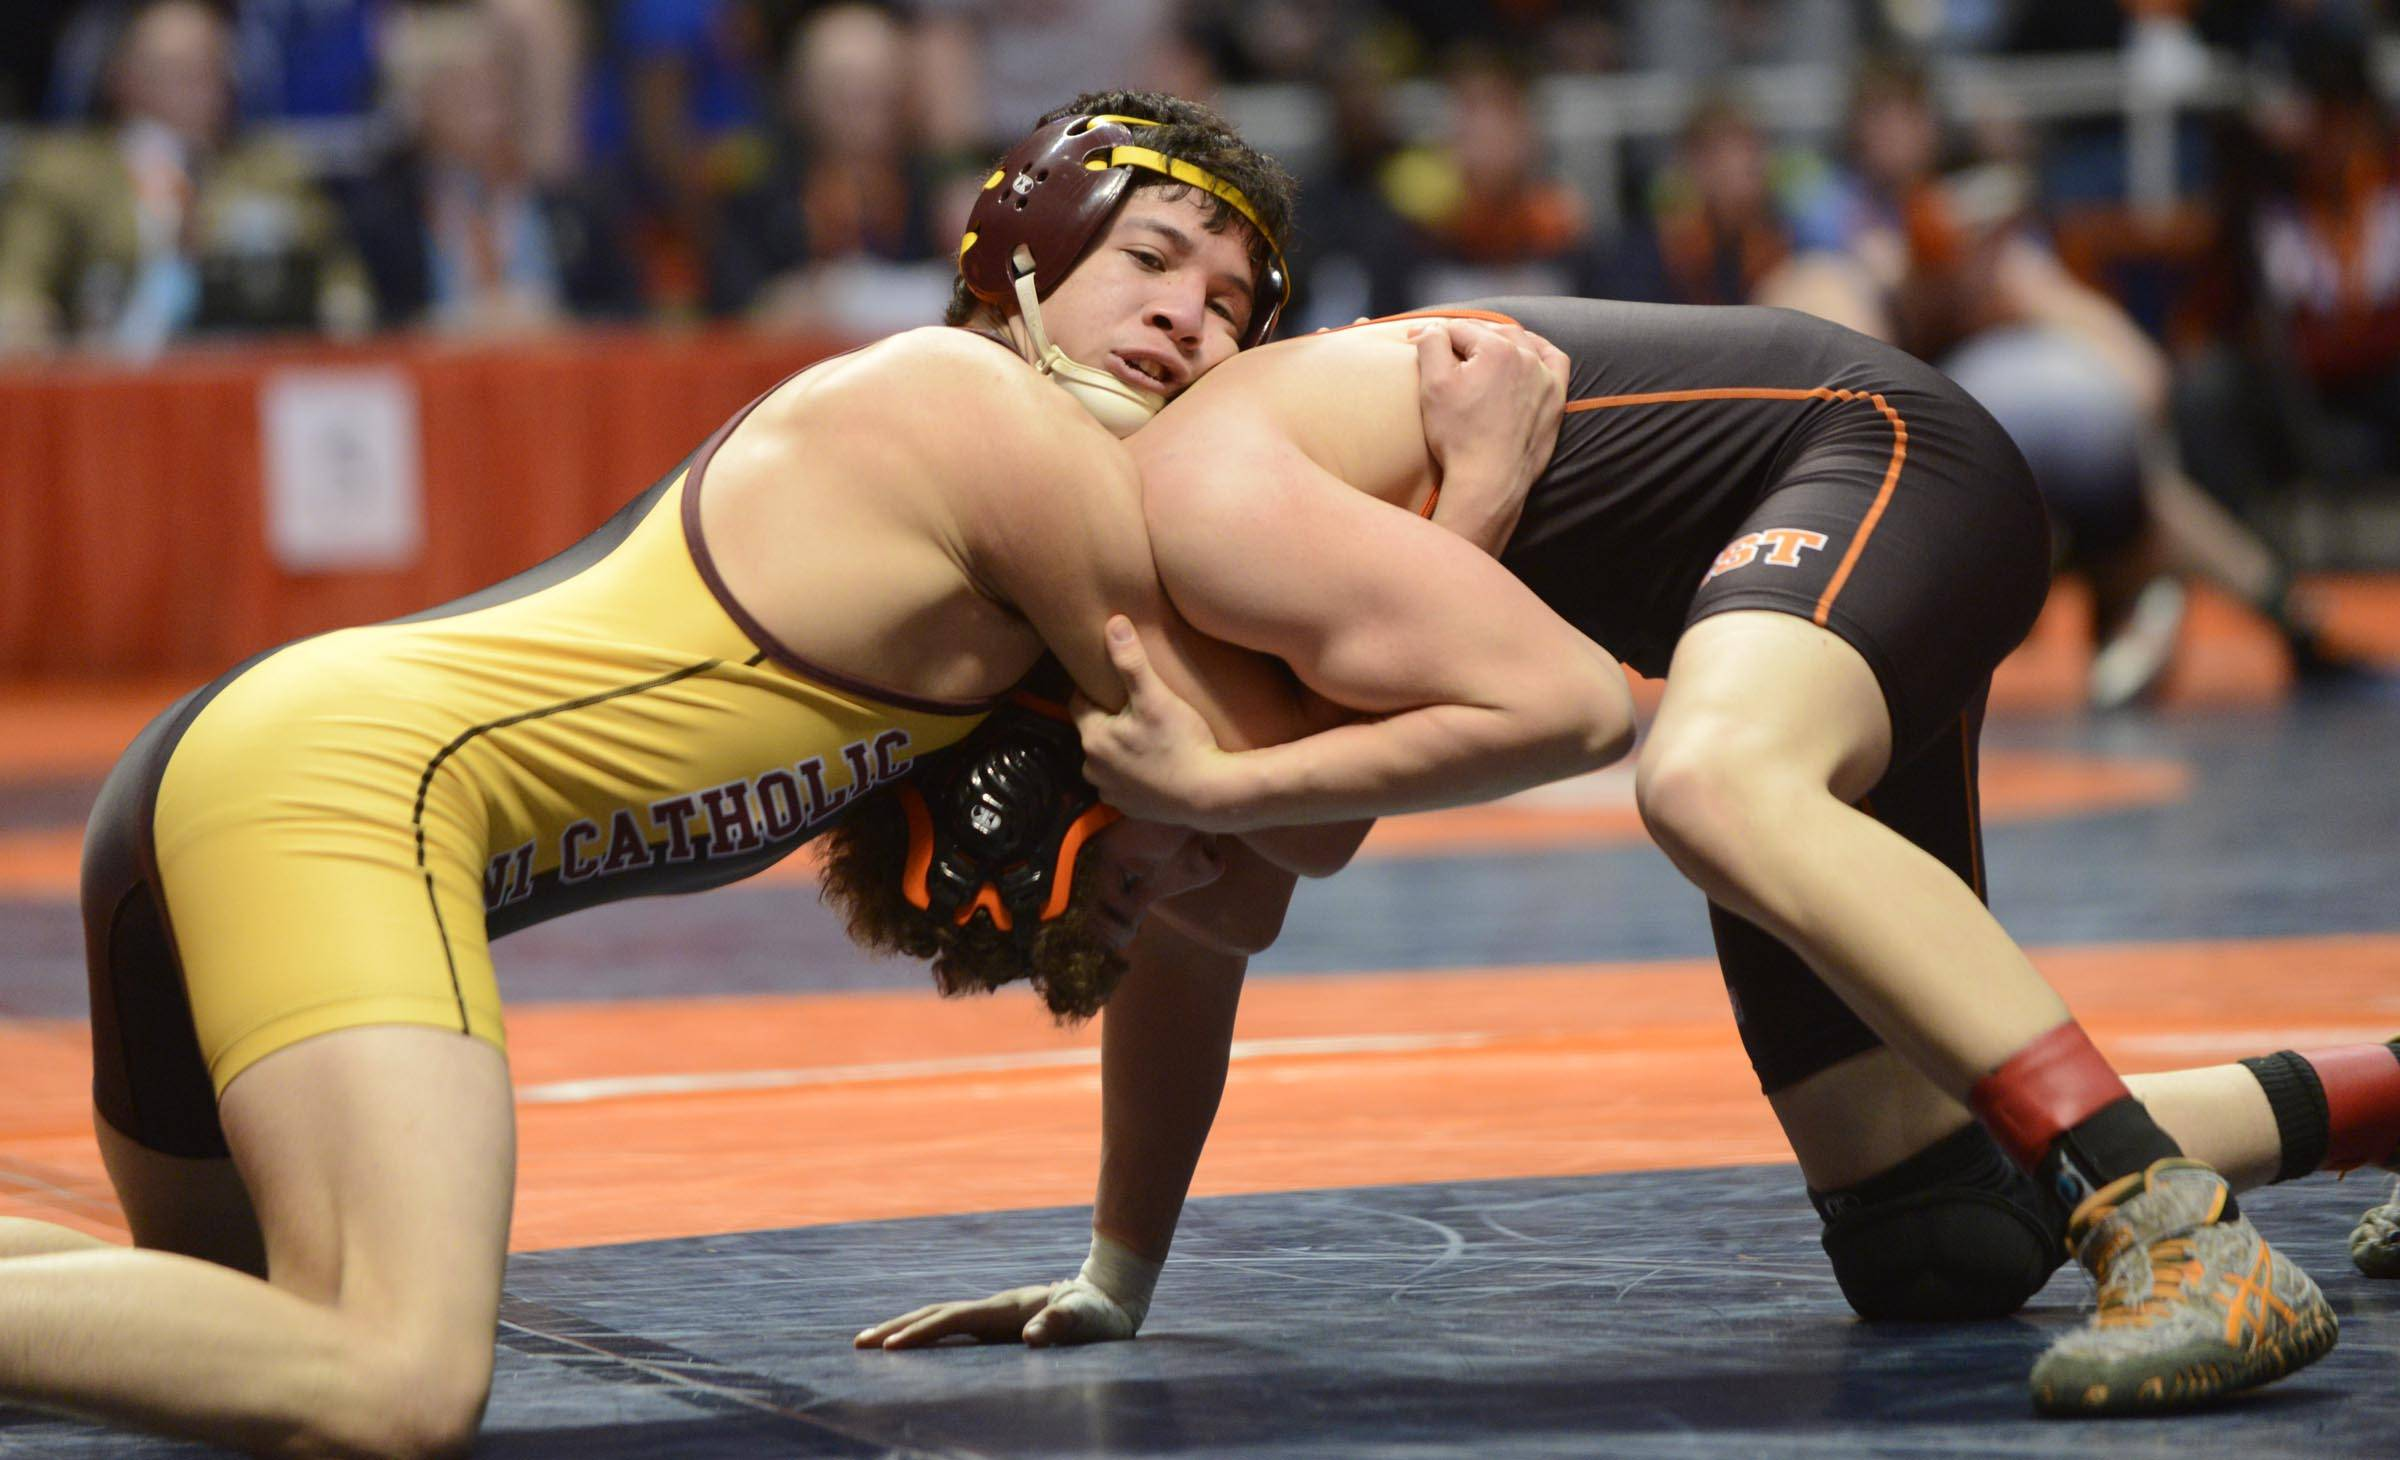 Chris Garcia of Montini High School competes against Kyle Rodriguez of Lincolnway West High School Friday in the 145-pound weight class semifinals of the wrestling IHSA Class 2A state tournament at State Farm Center in Champaign.